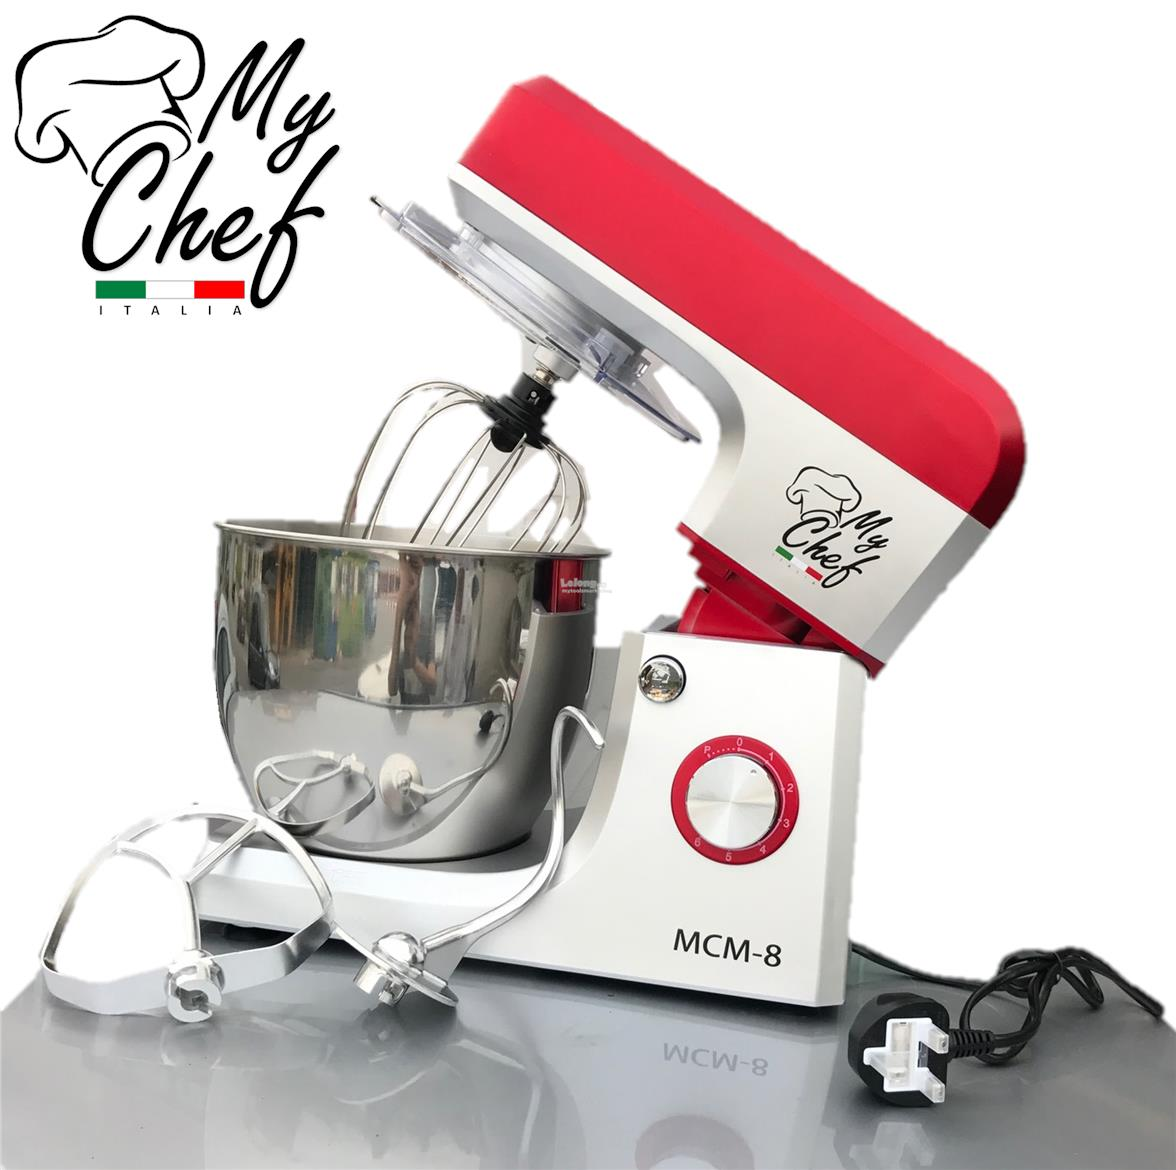 Marketing Exhibition Stand Mixer : Mychef italia mcm l w stand mi end pm